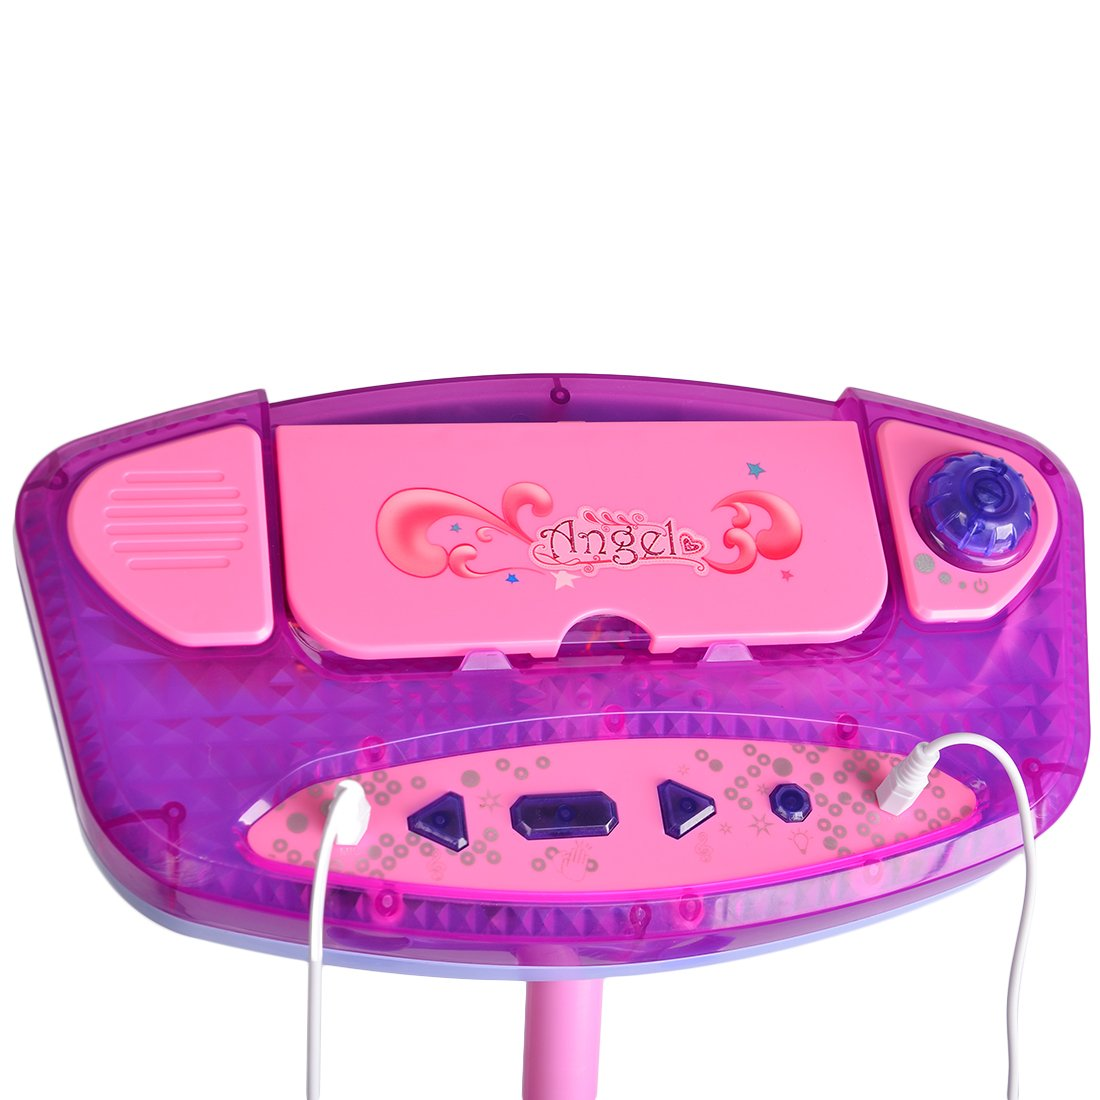 PeleusTech® Karaoke Machine with Adjustable Stand and 2 Microphones Bluetooth Music Toy for Kids - (Pink) by PeleusTech® (Image #6)